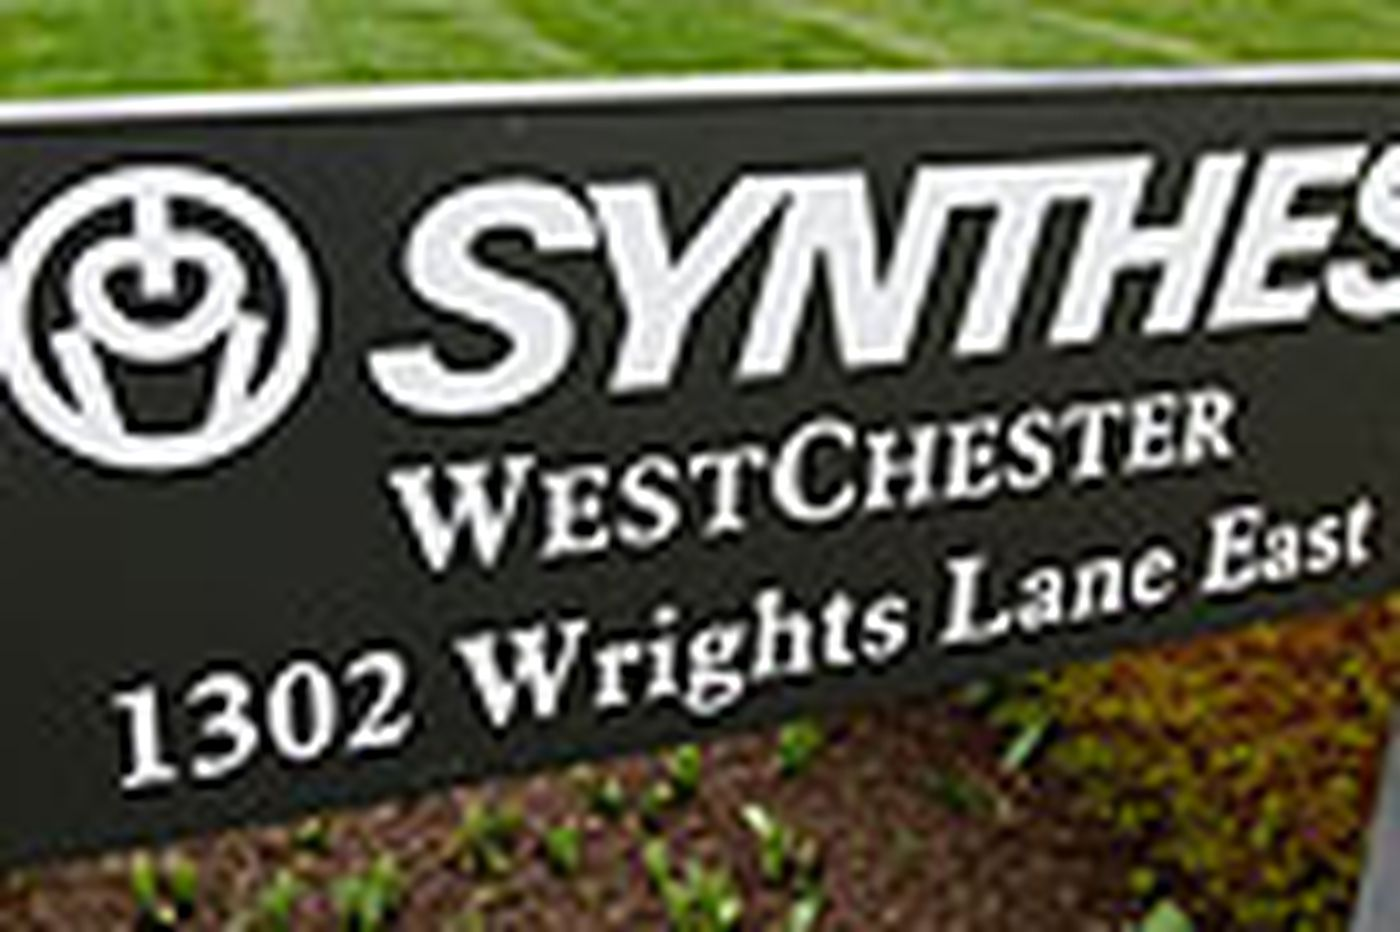 Synthes sued over deaths in connection with bone cement